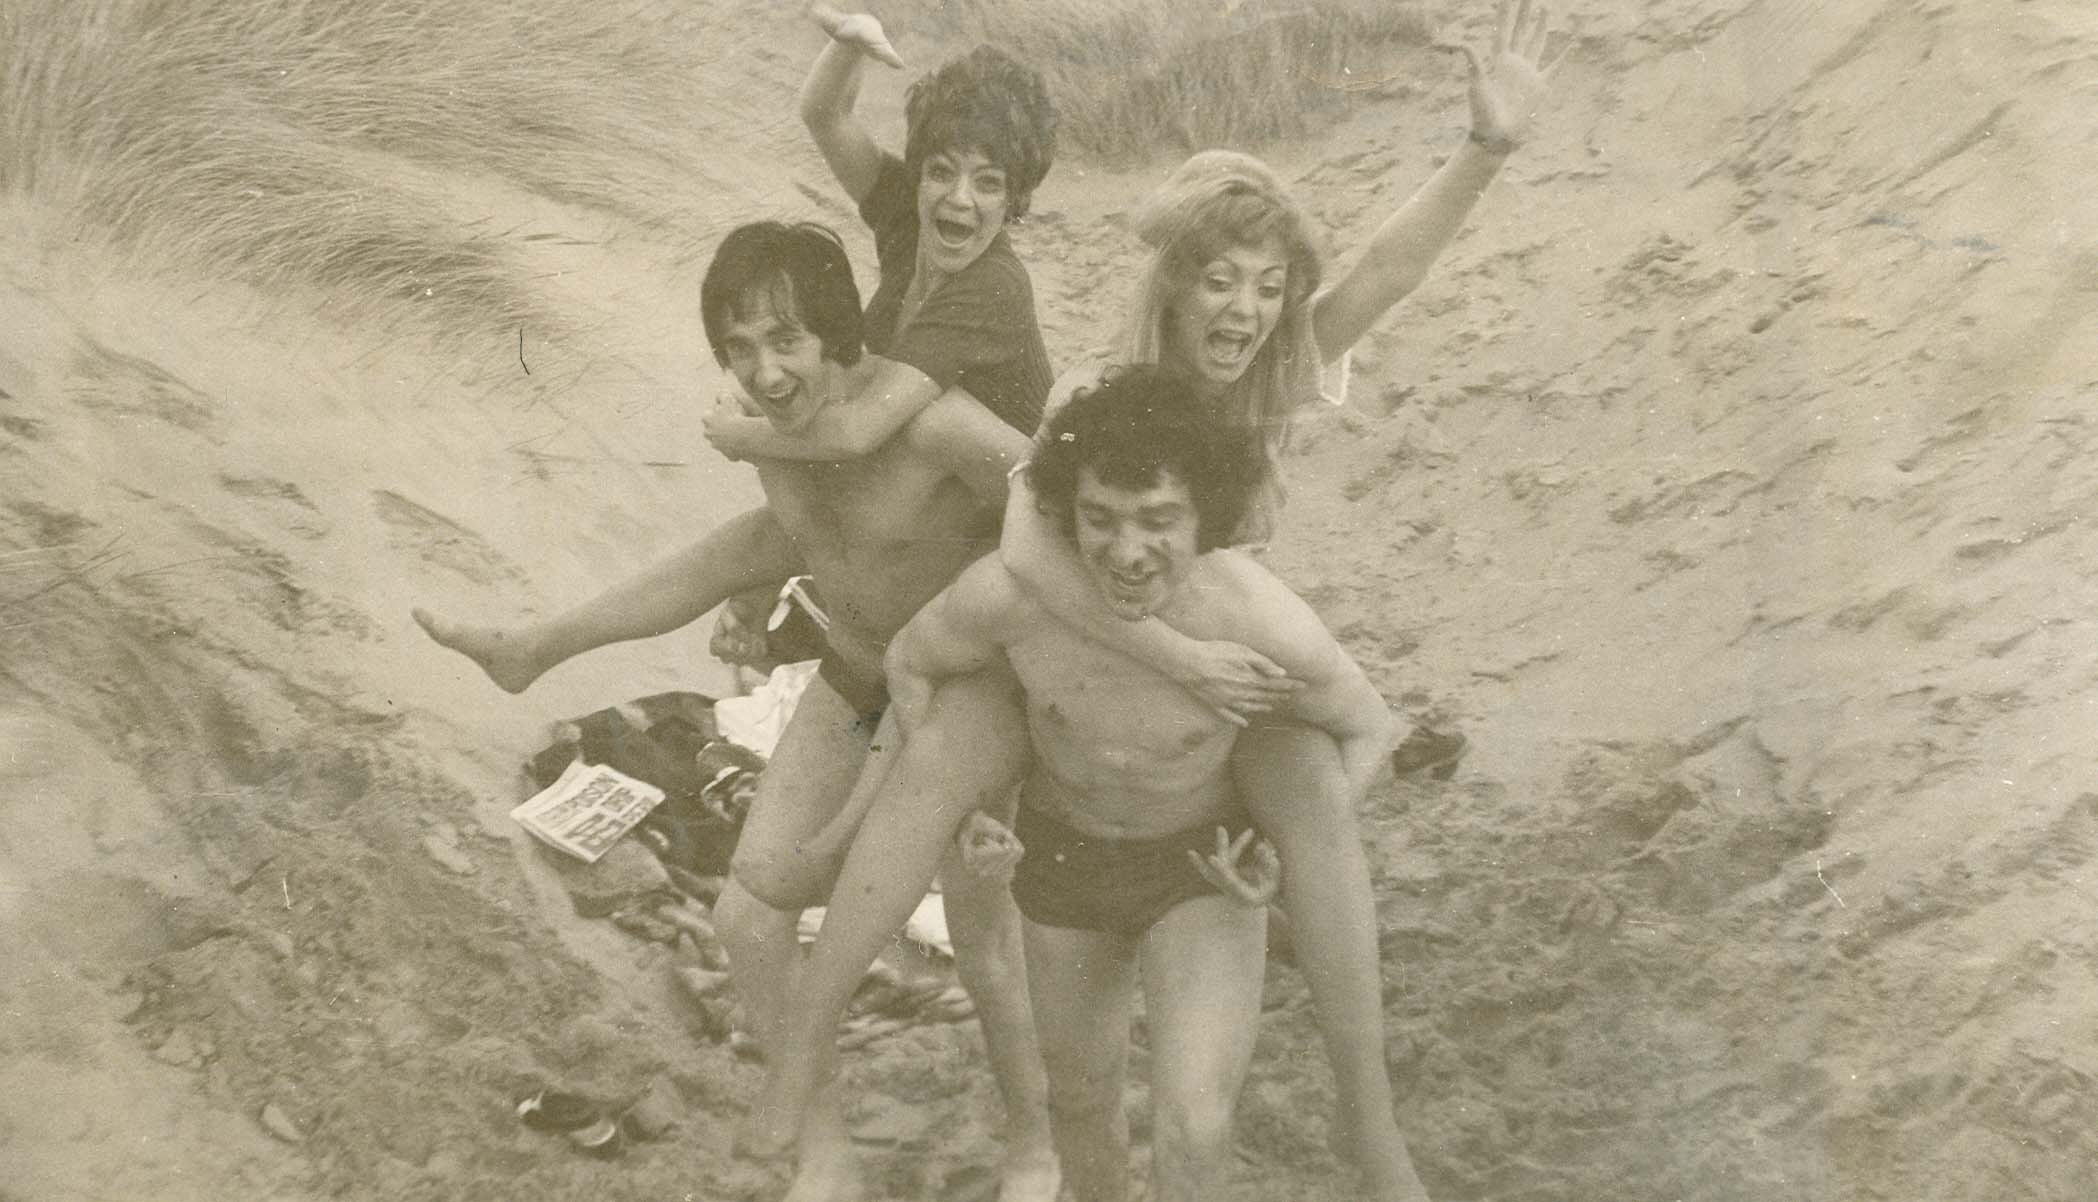 Alison Steadman Nude photo friday: day at the beach?   ljmu library